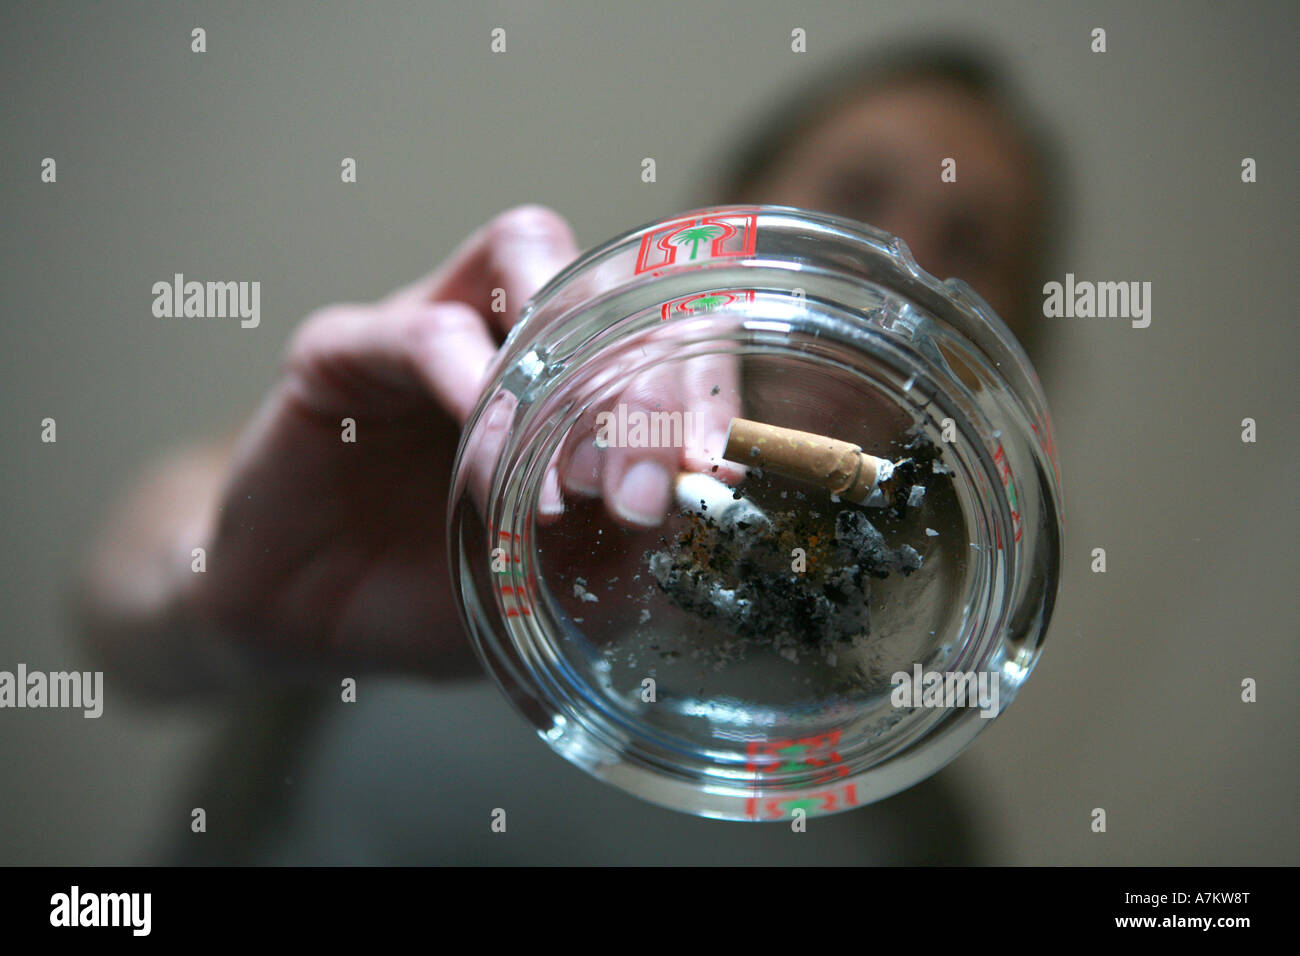 Smoker extinguishes a cigarette into a used ashtray on top of a glass coffee table in pub restaurant public building Stock Photo